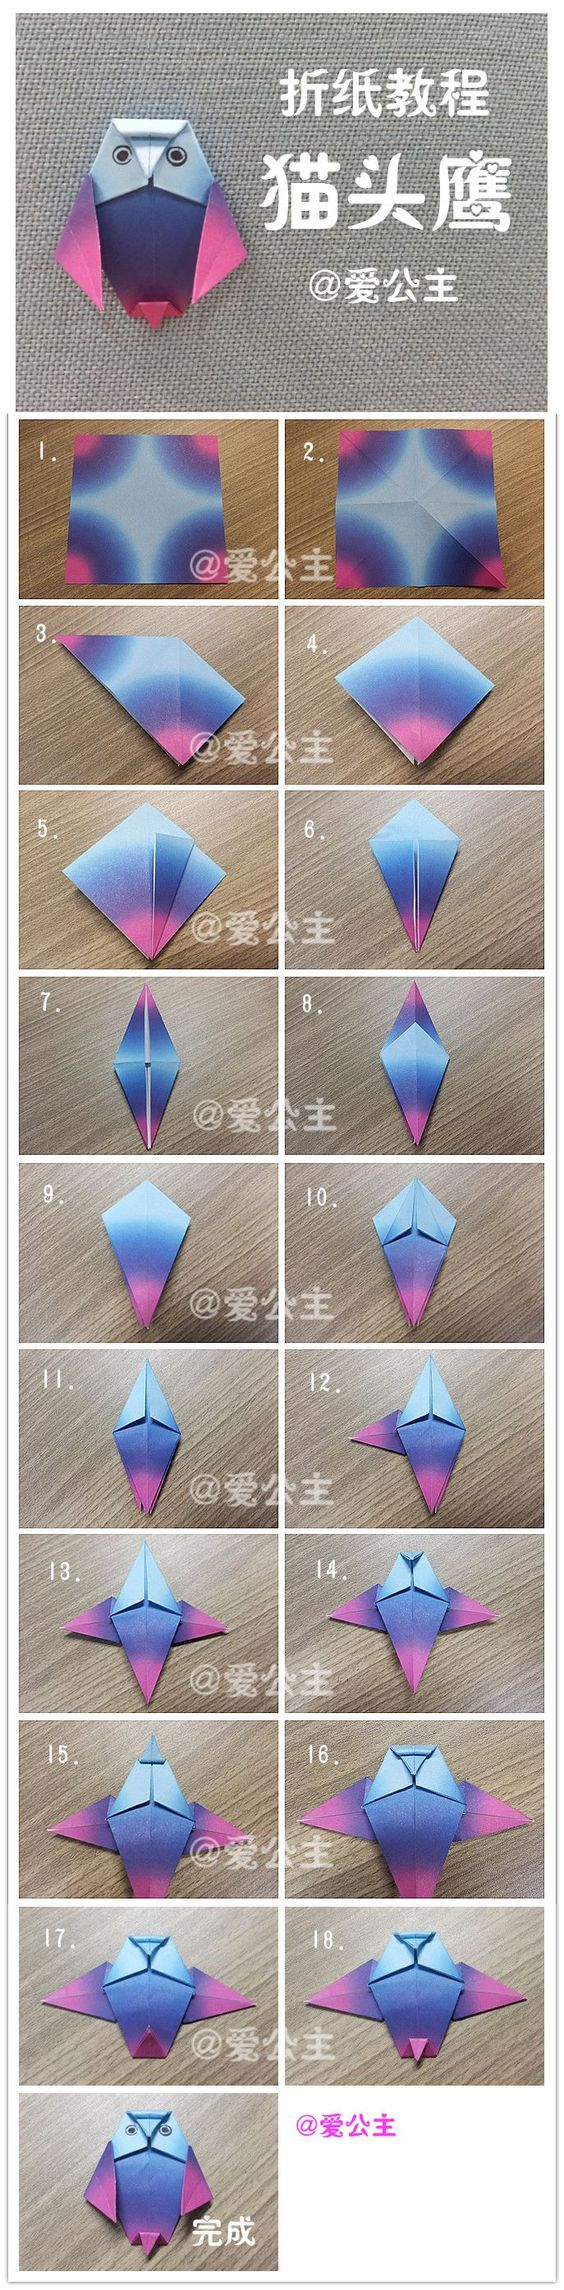 5 senses fun idea to make an eye this is an origami paper 5 senses fun idea to make an eye this is an origami paper folding activity easy to follow tutorial art pinterest paper folding origami paper and jeuxipadfo Choice Image